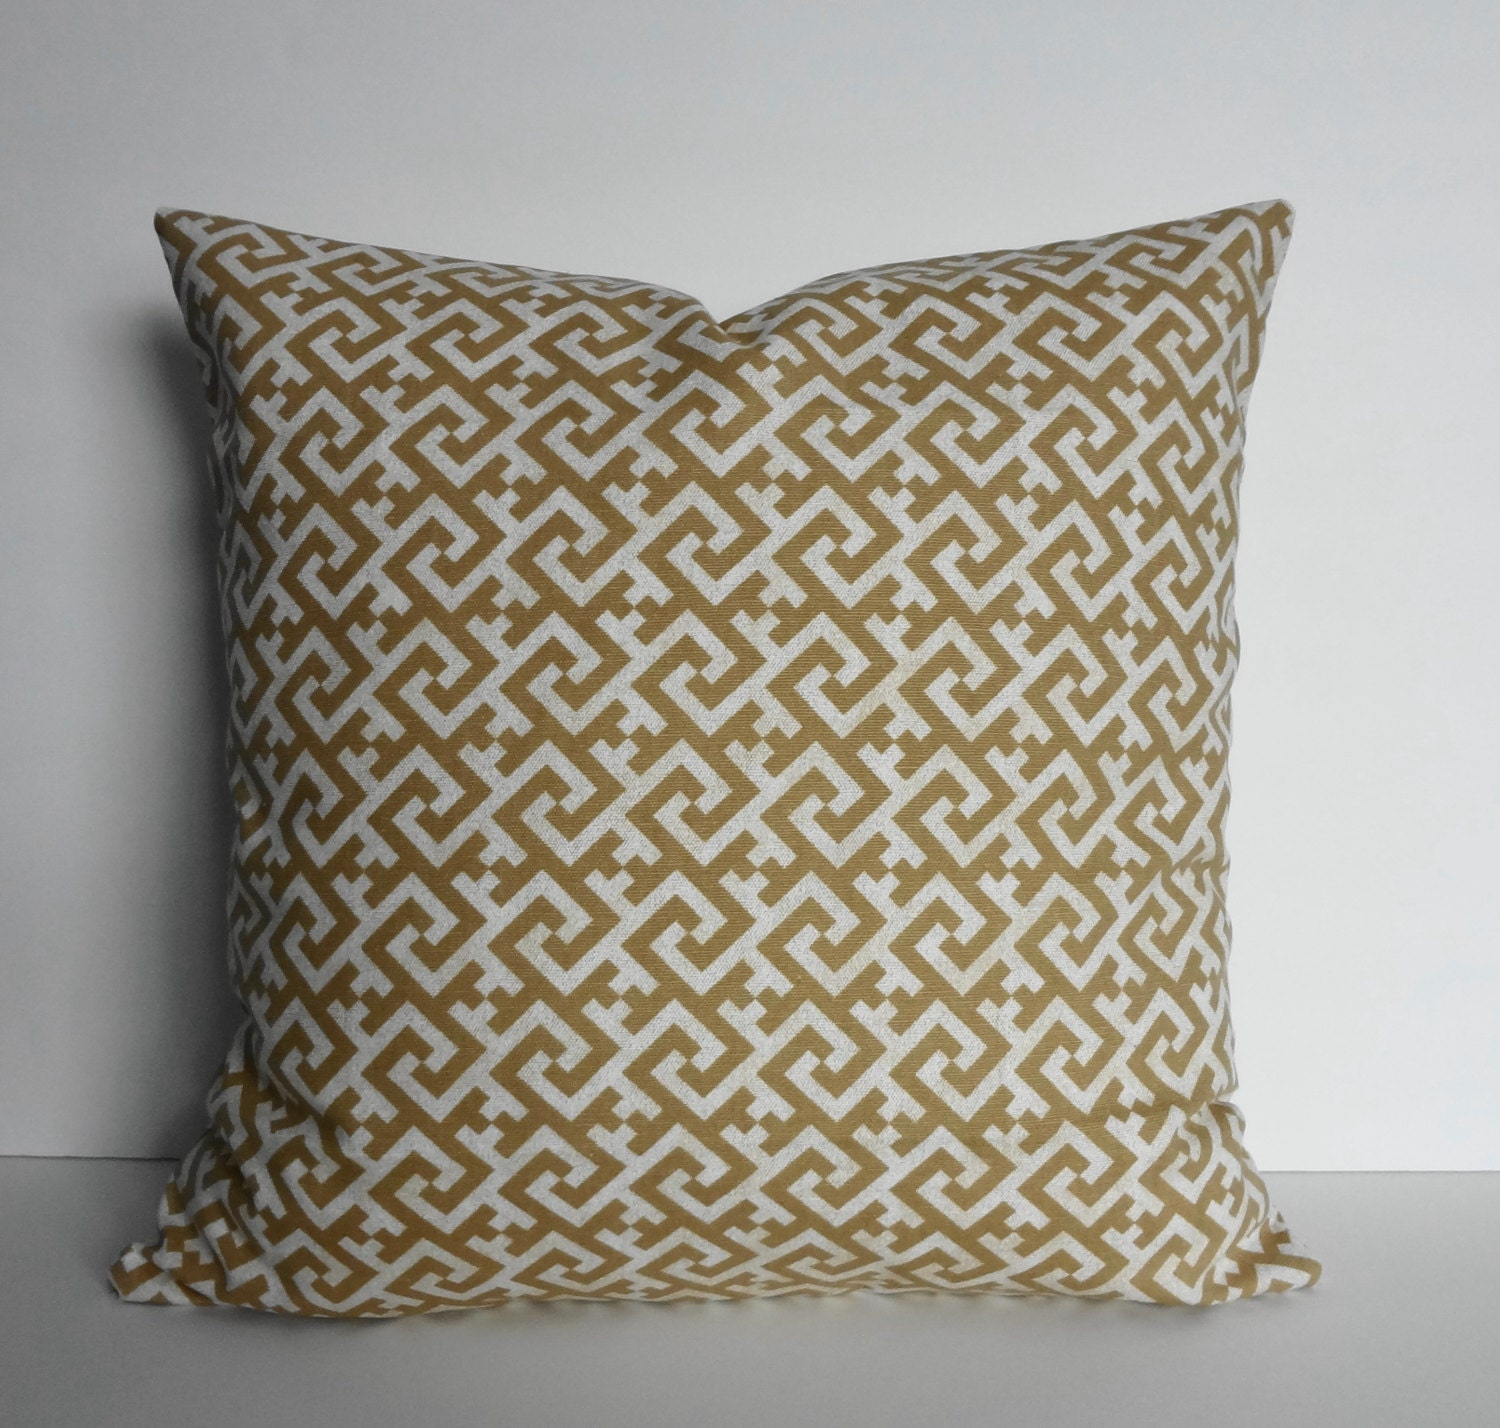 TAN Greek Key Decorative Pillow Cover Sand Cushion by pillows4fun